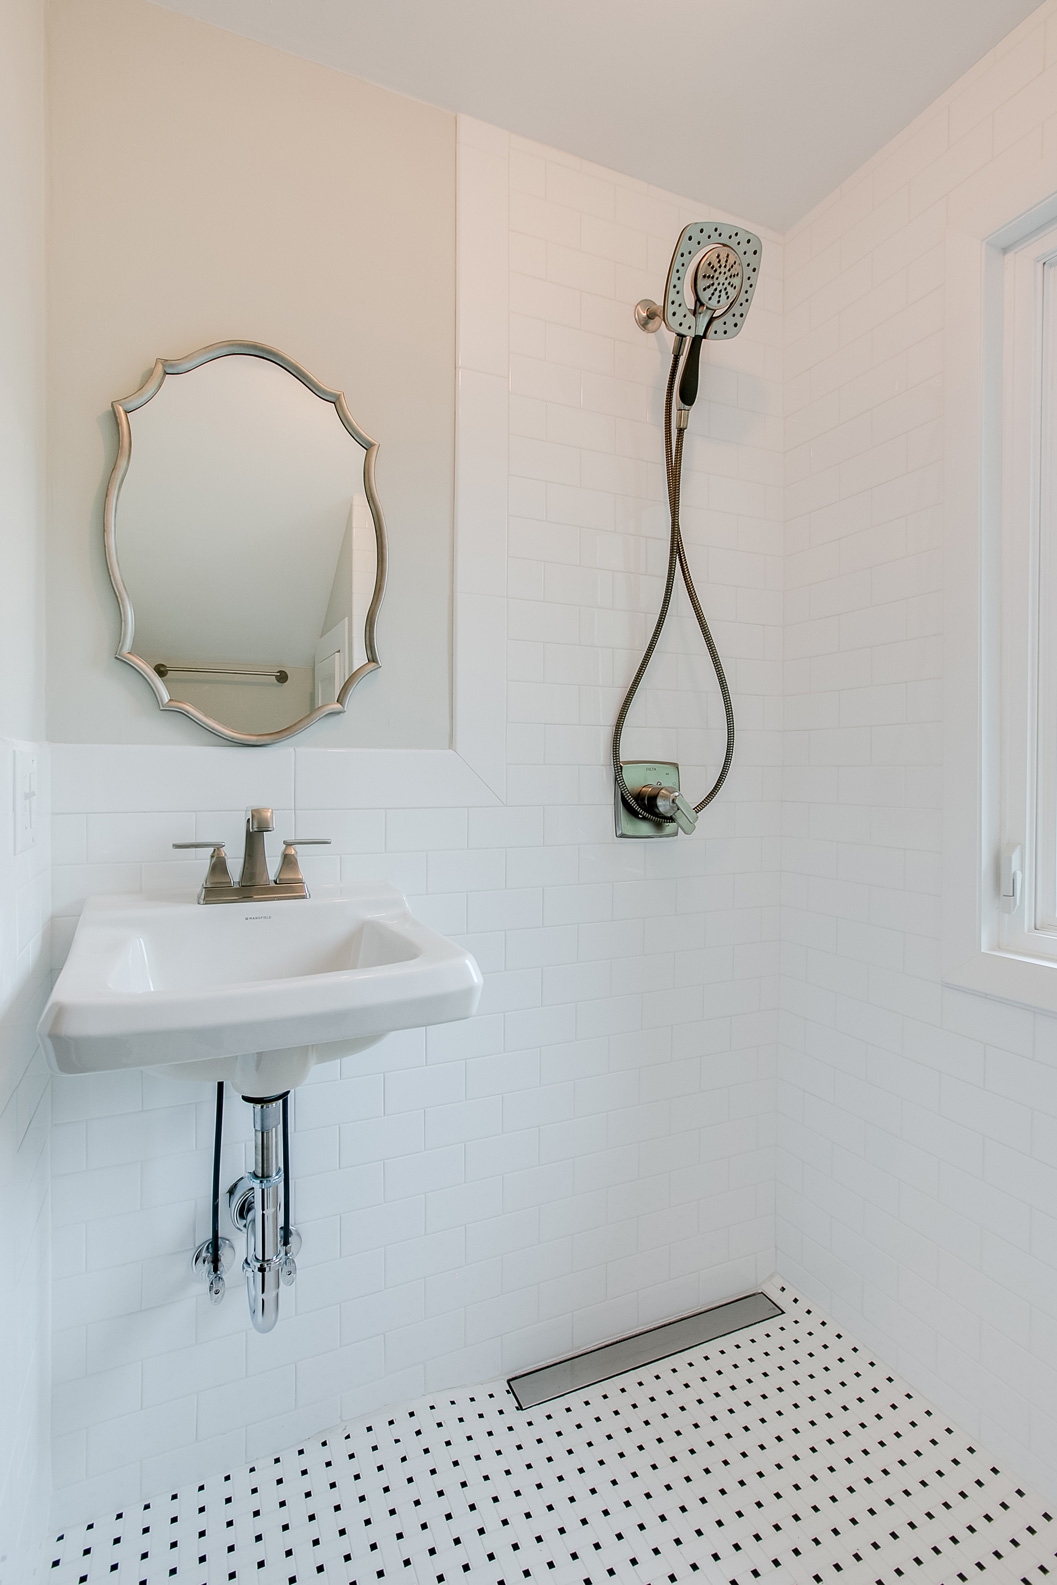 Linear Drains Allow for Curbless Showers when remodeling a bathroom to age in place